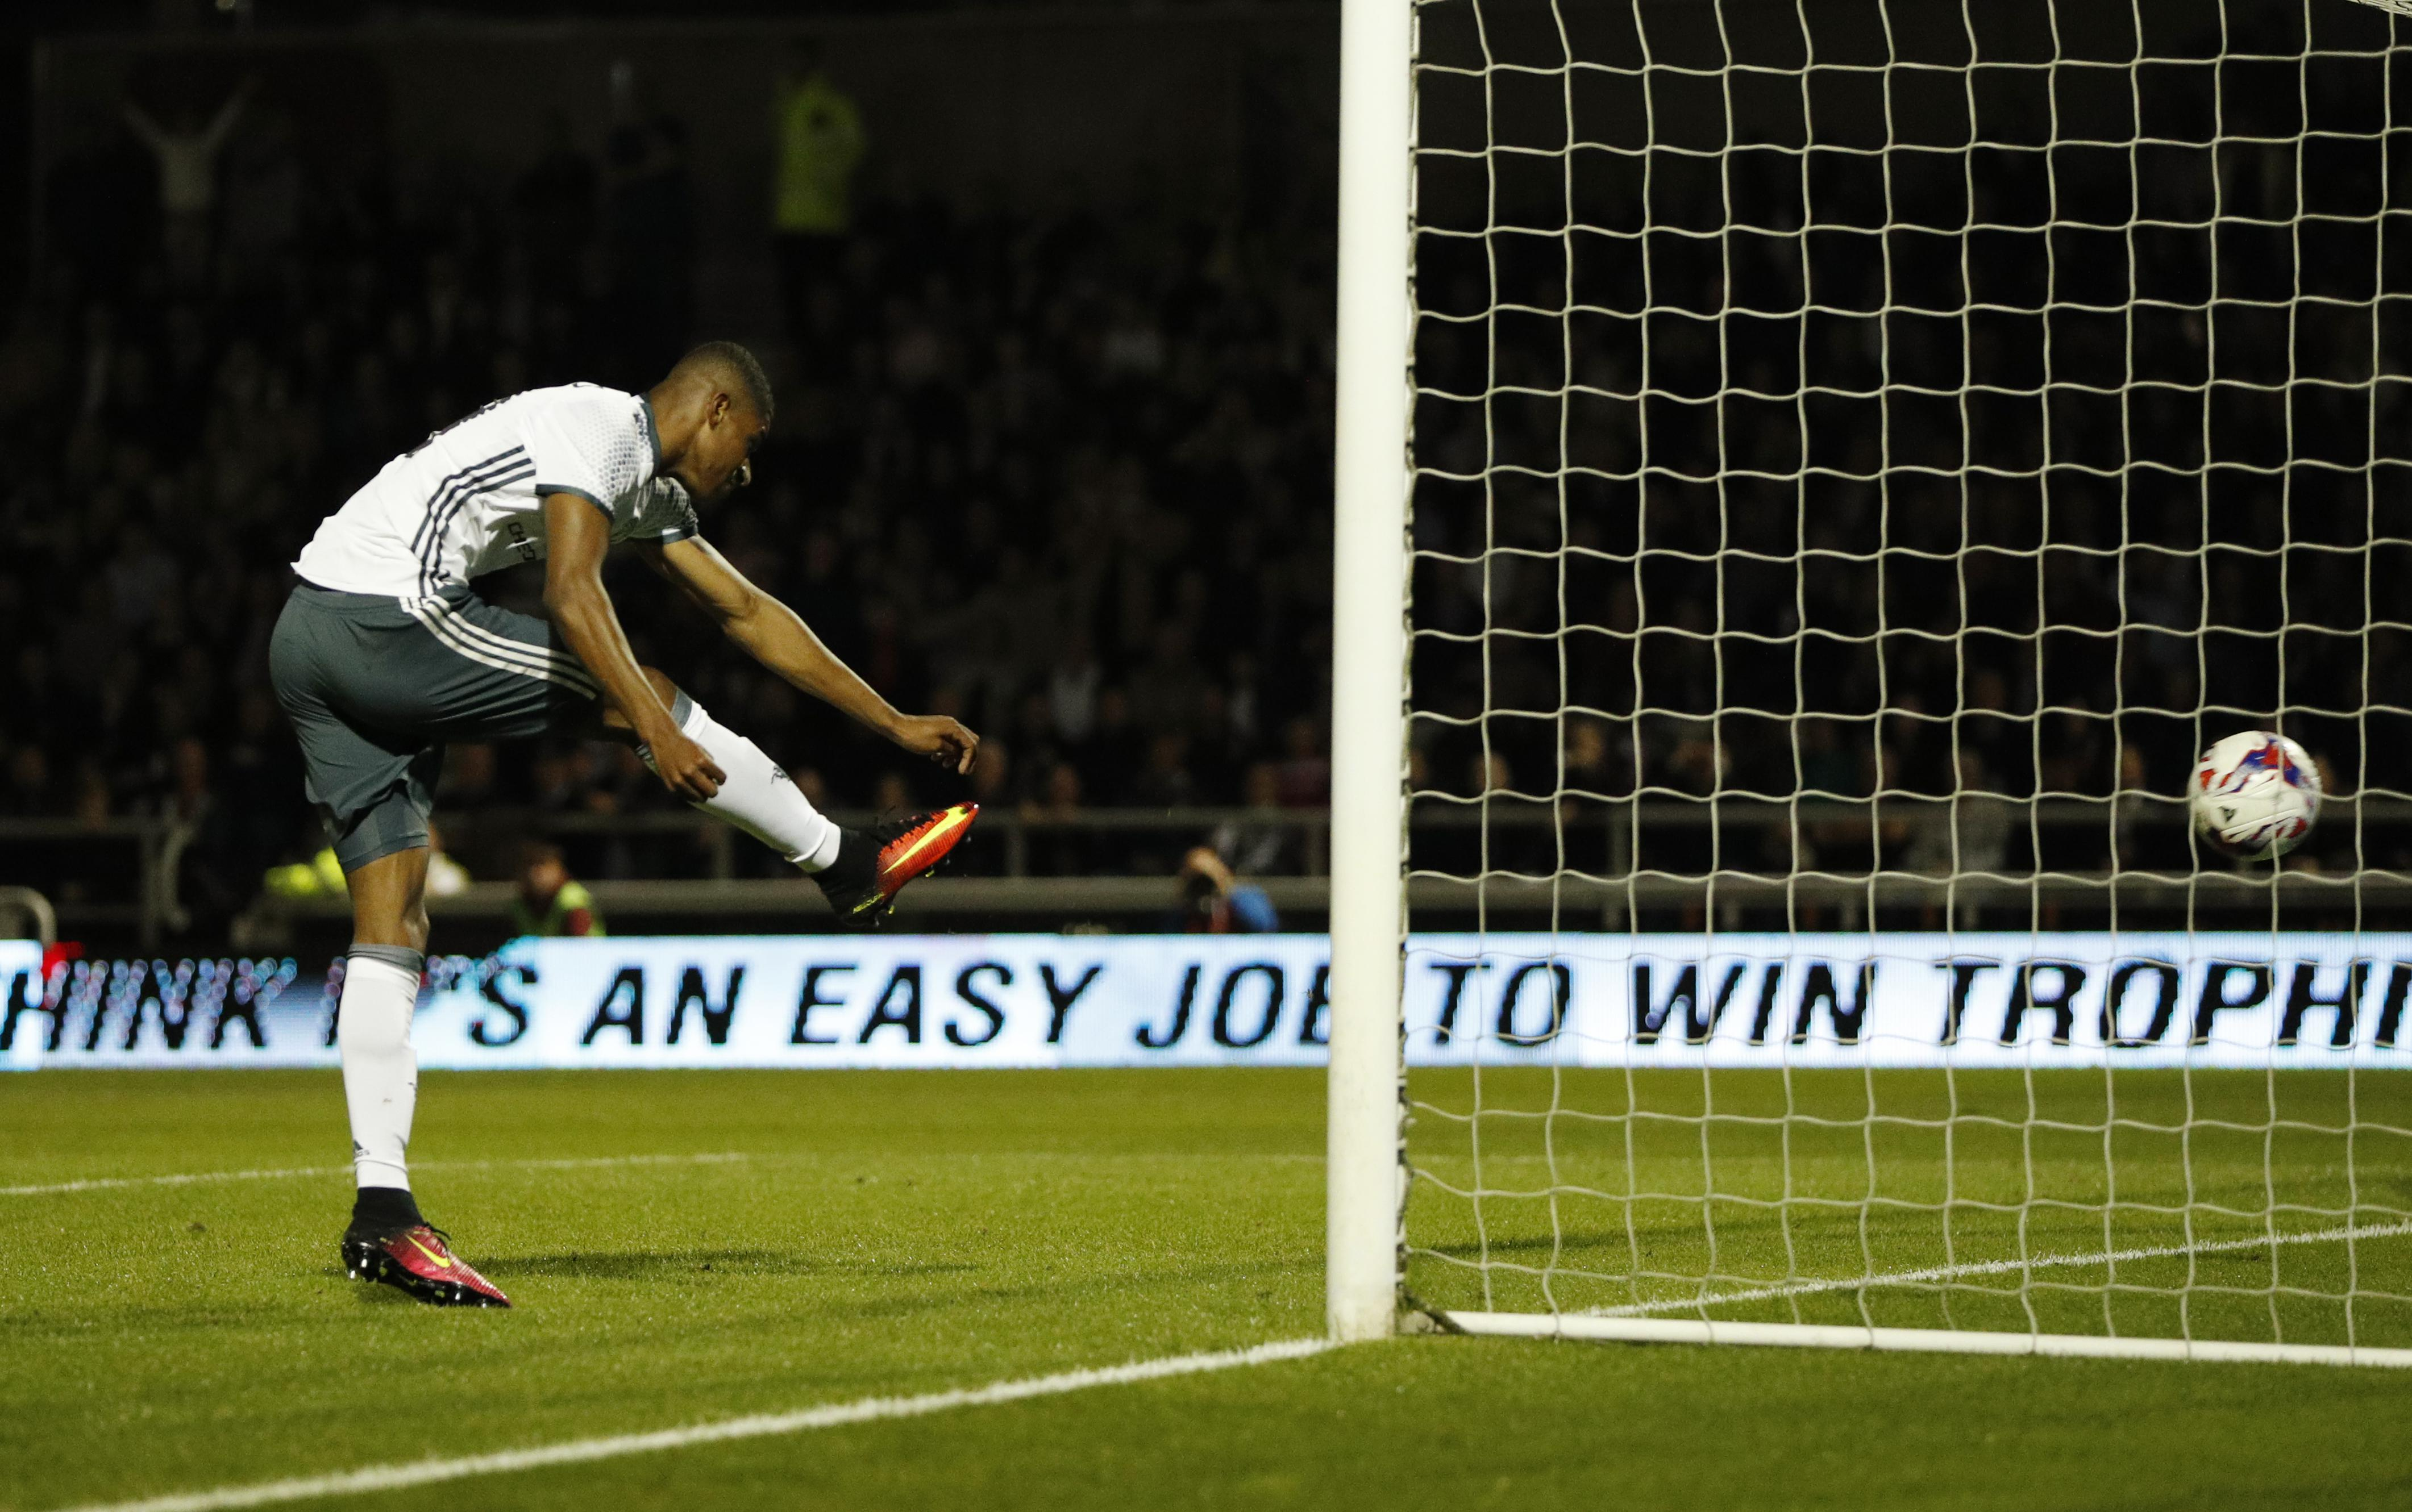 Trying to burst the net when given an open goal… good lad